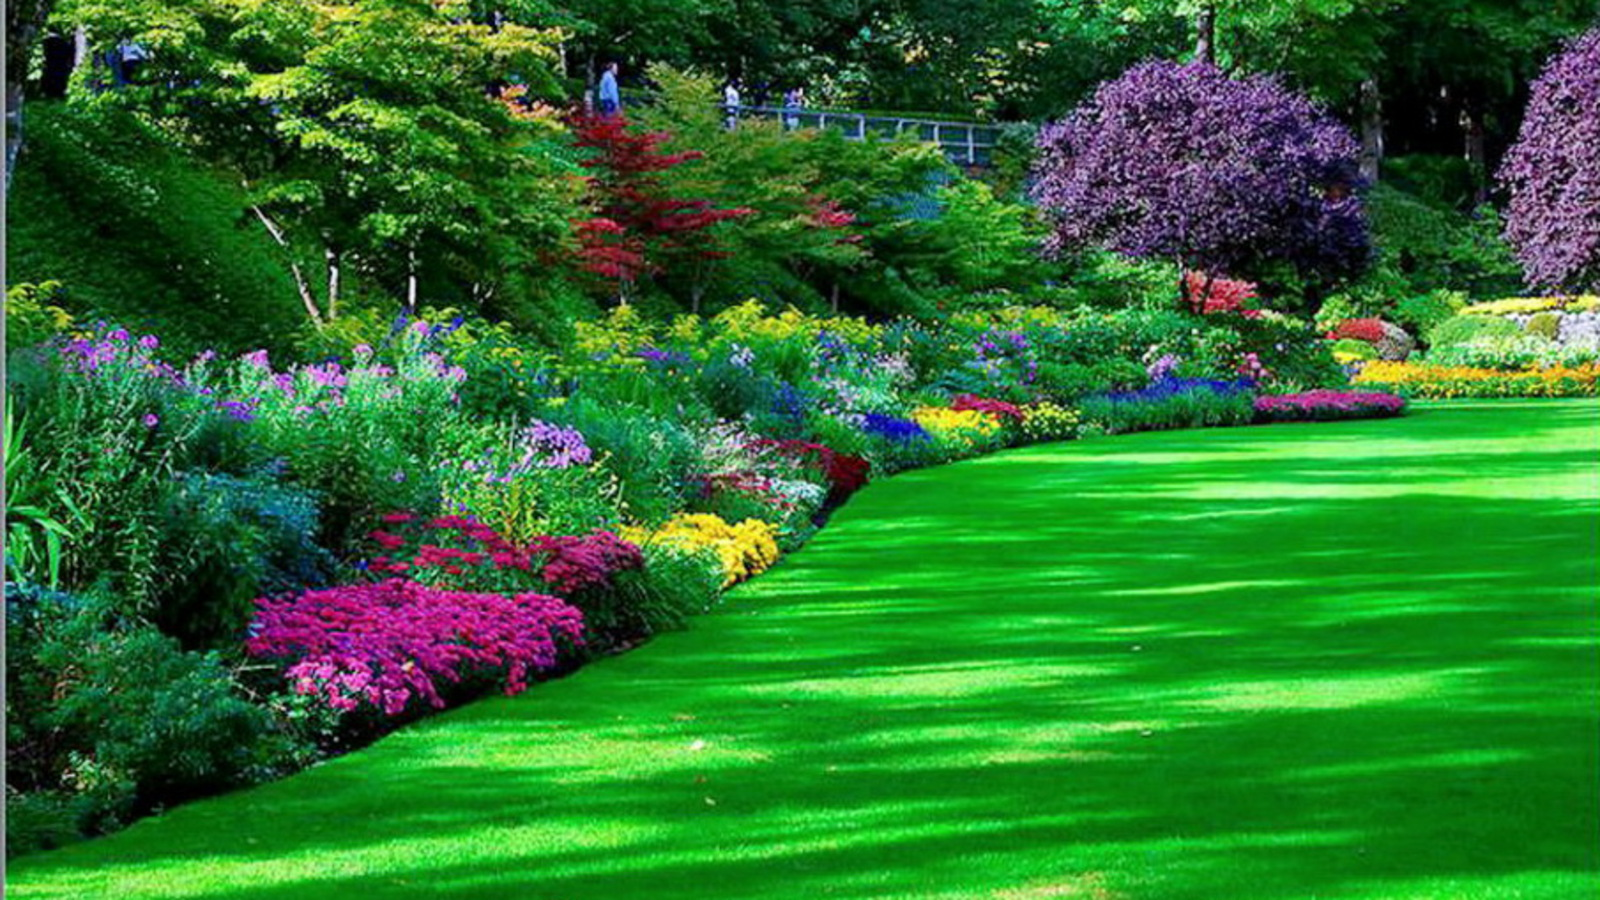 a beautiful park wallpaper and background image | 1600x900 | id:427178